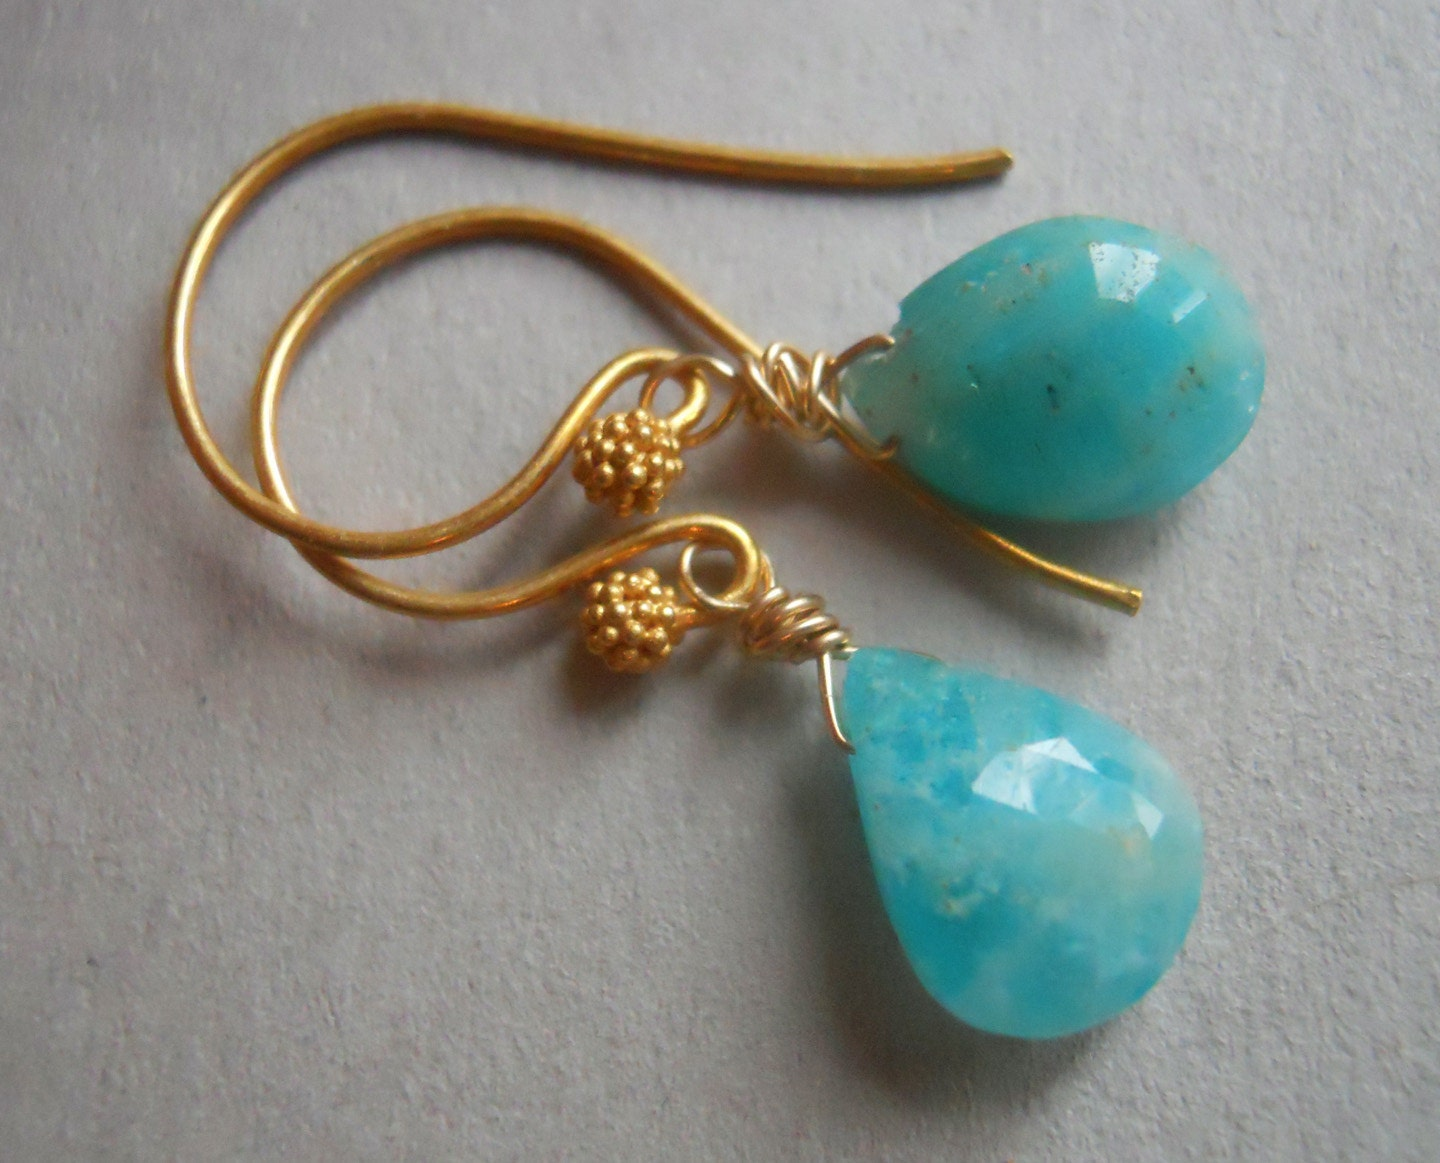 Stunning Amazonite Pear earrings - $33.00 USD